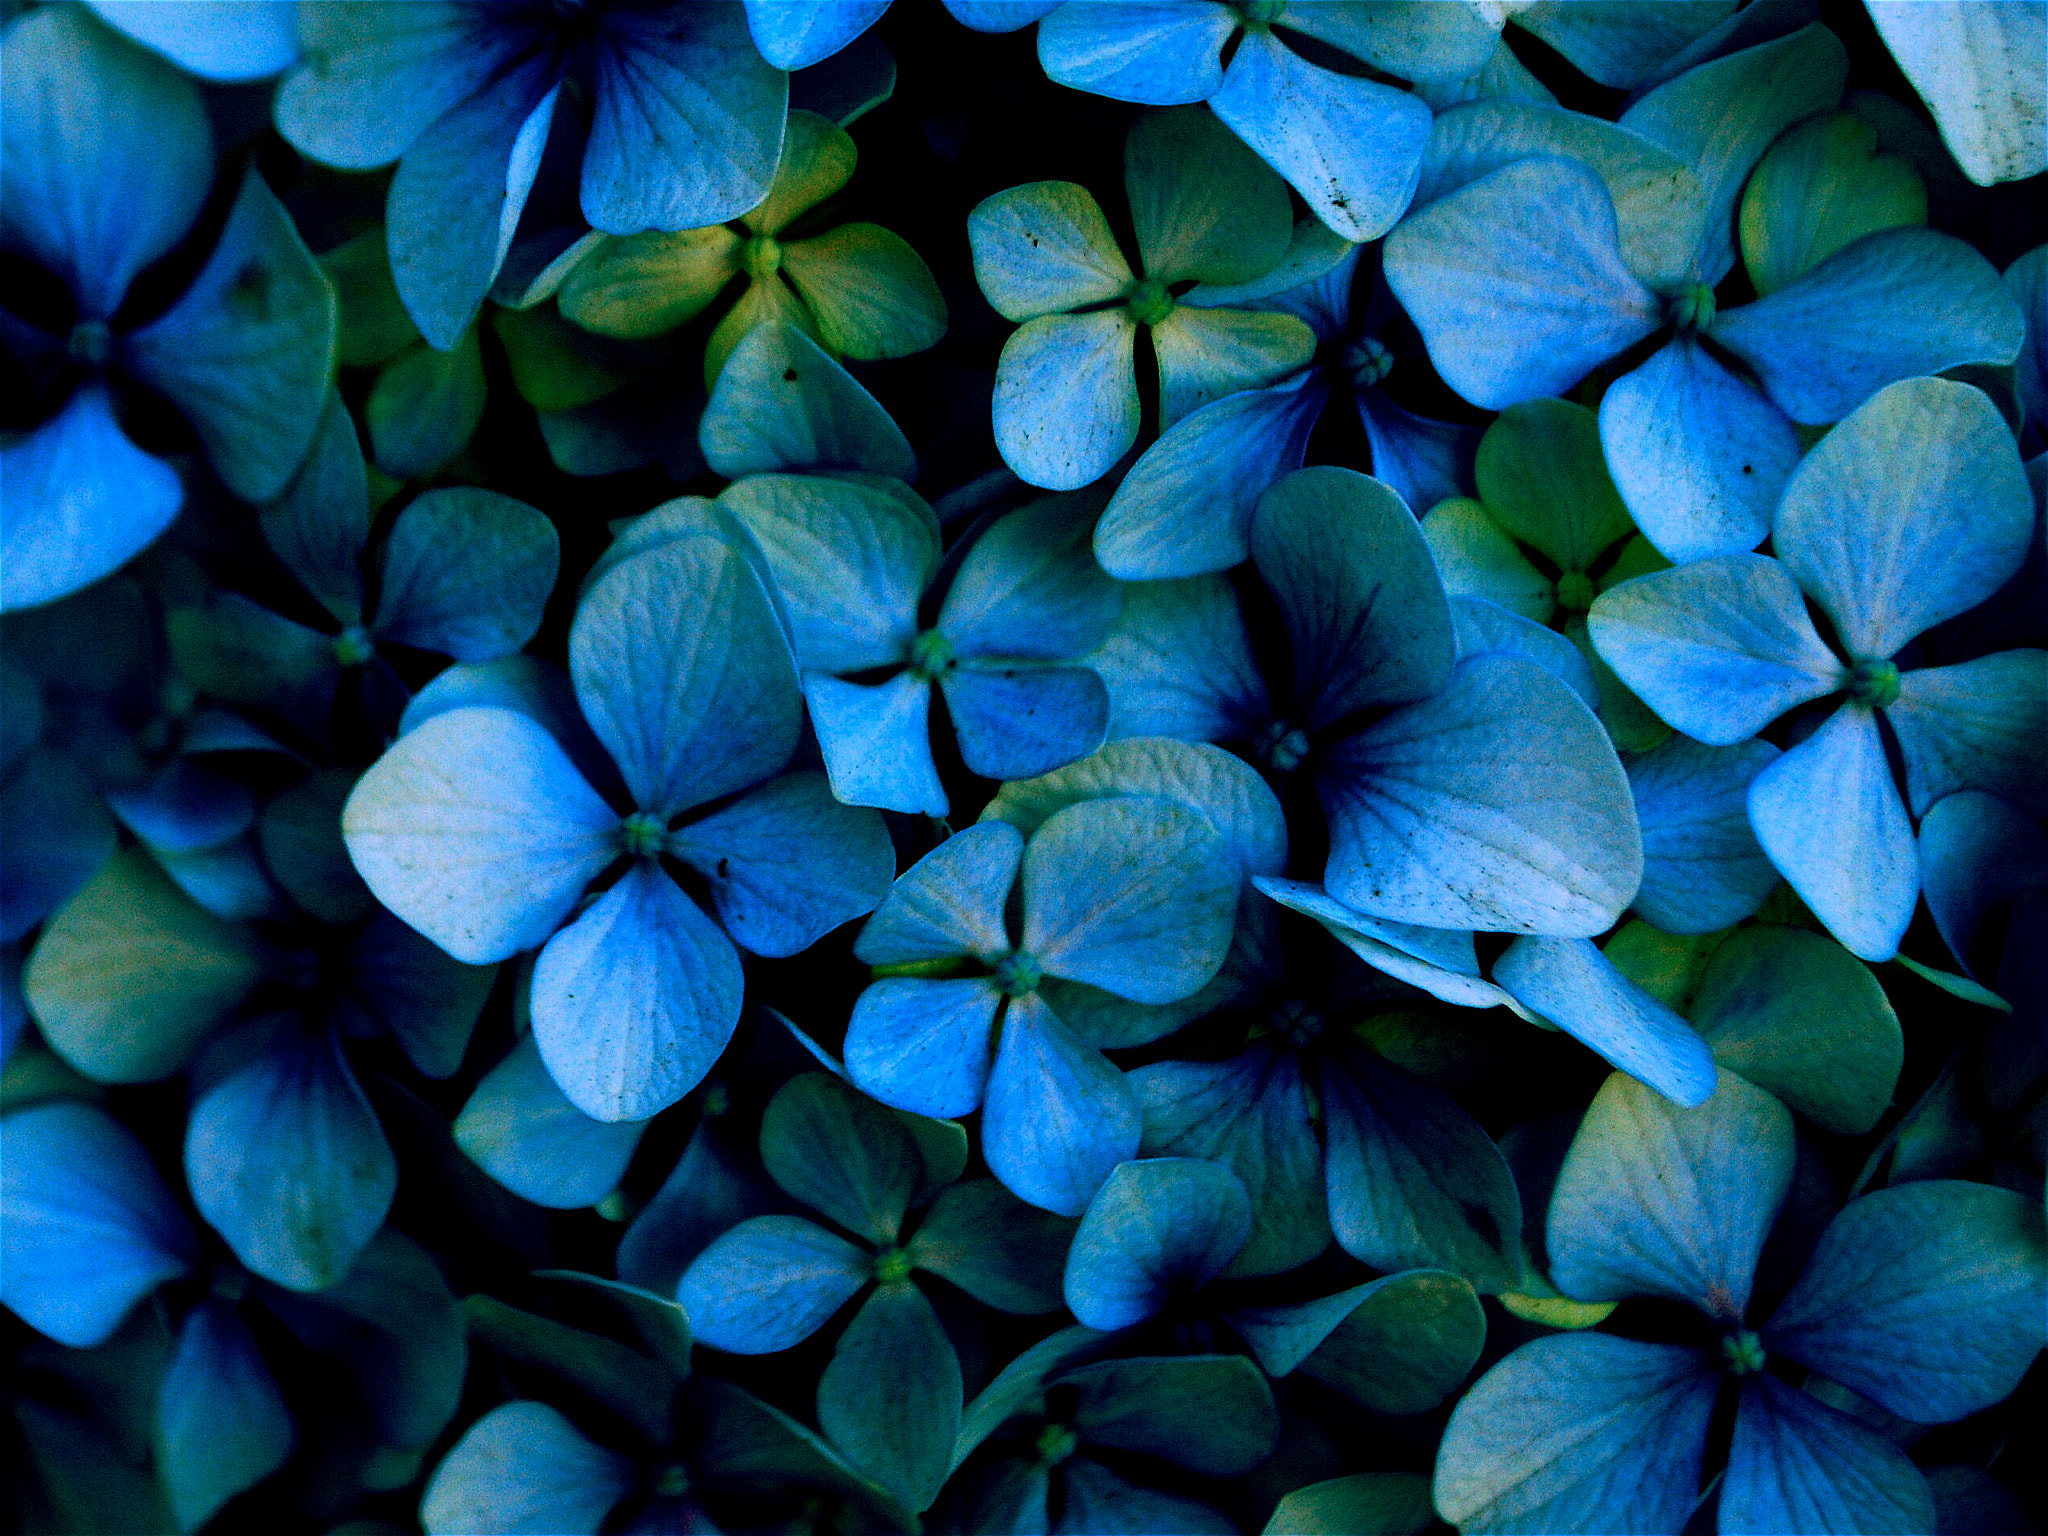 Photograph Hydrangea by Lora Doerfer on 500px